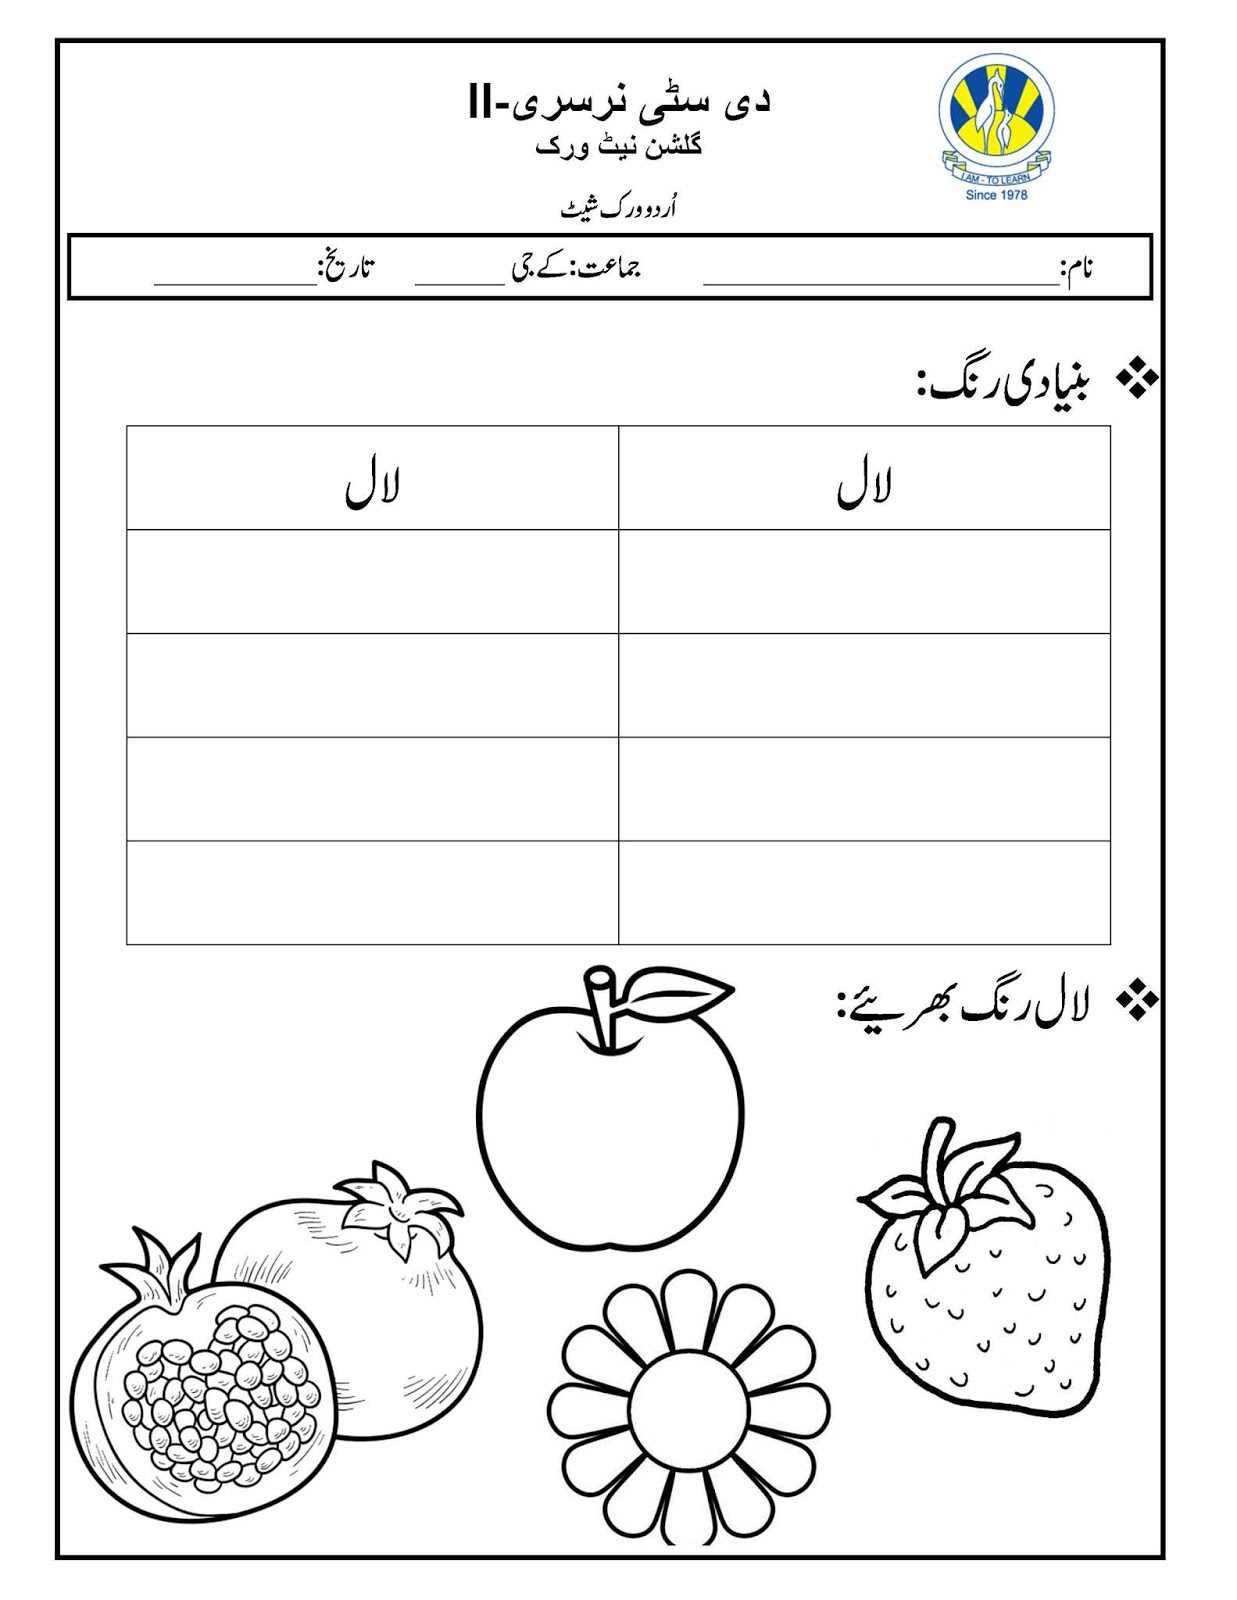 Nursery Class Urdu Matching Worksheets For Nursery